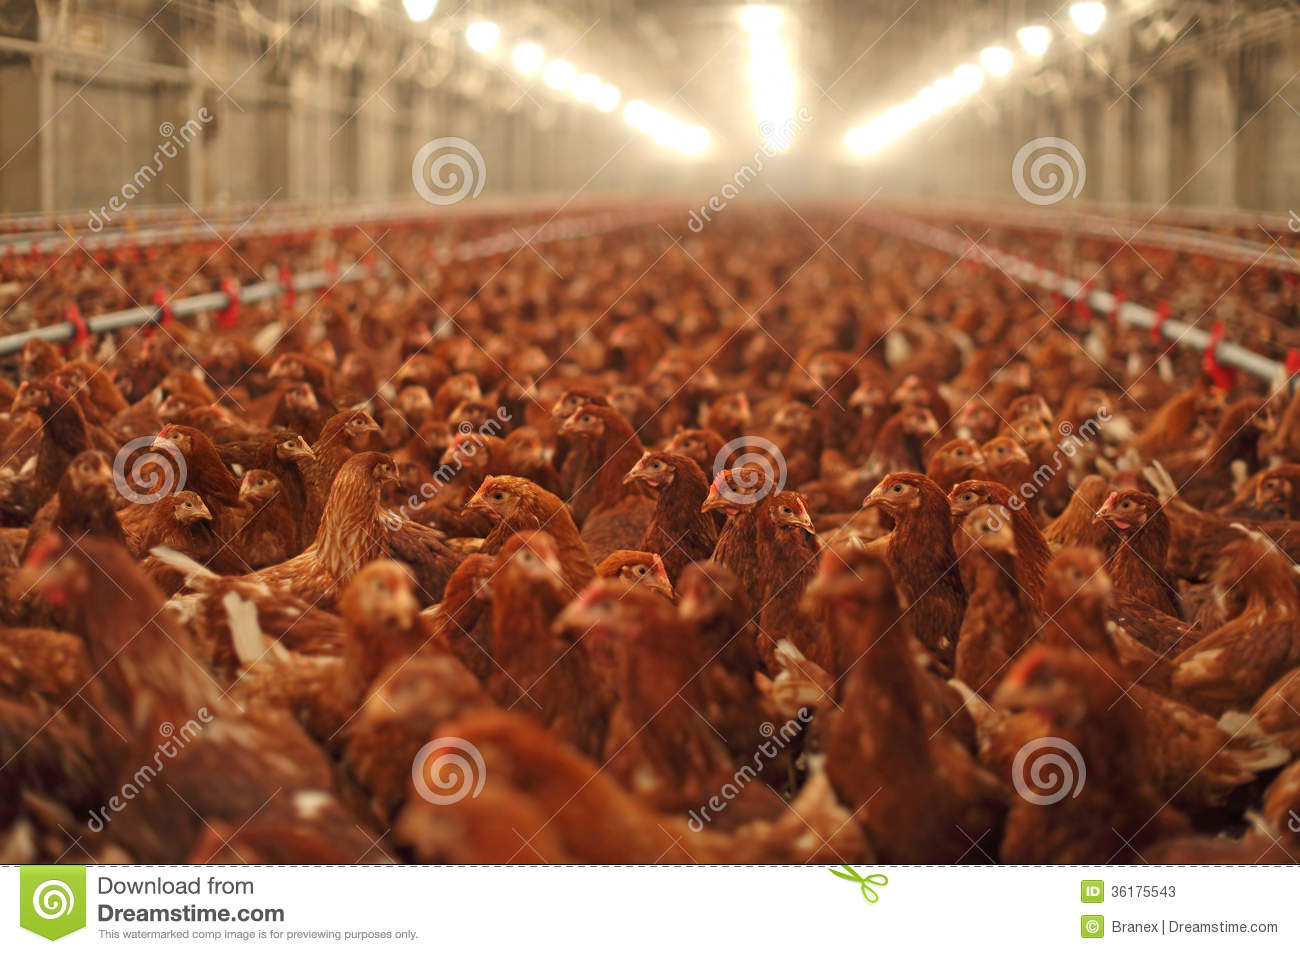 How Do I Start Chicken Production In South Africa?